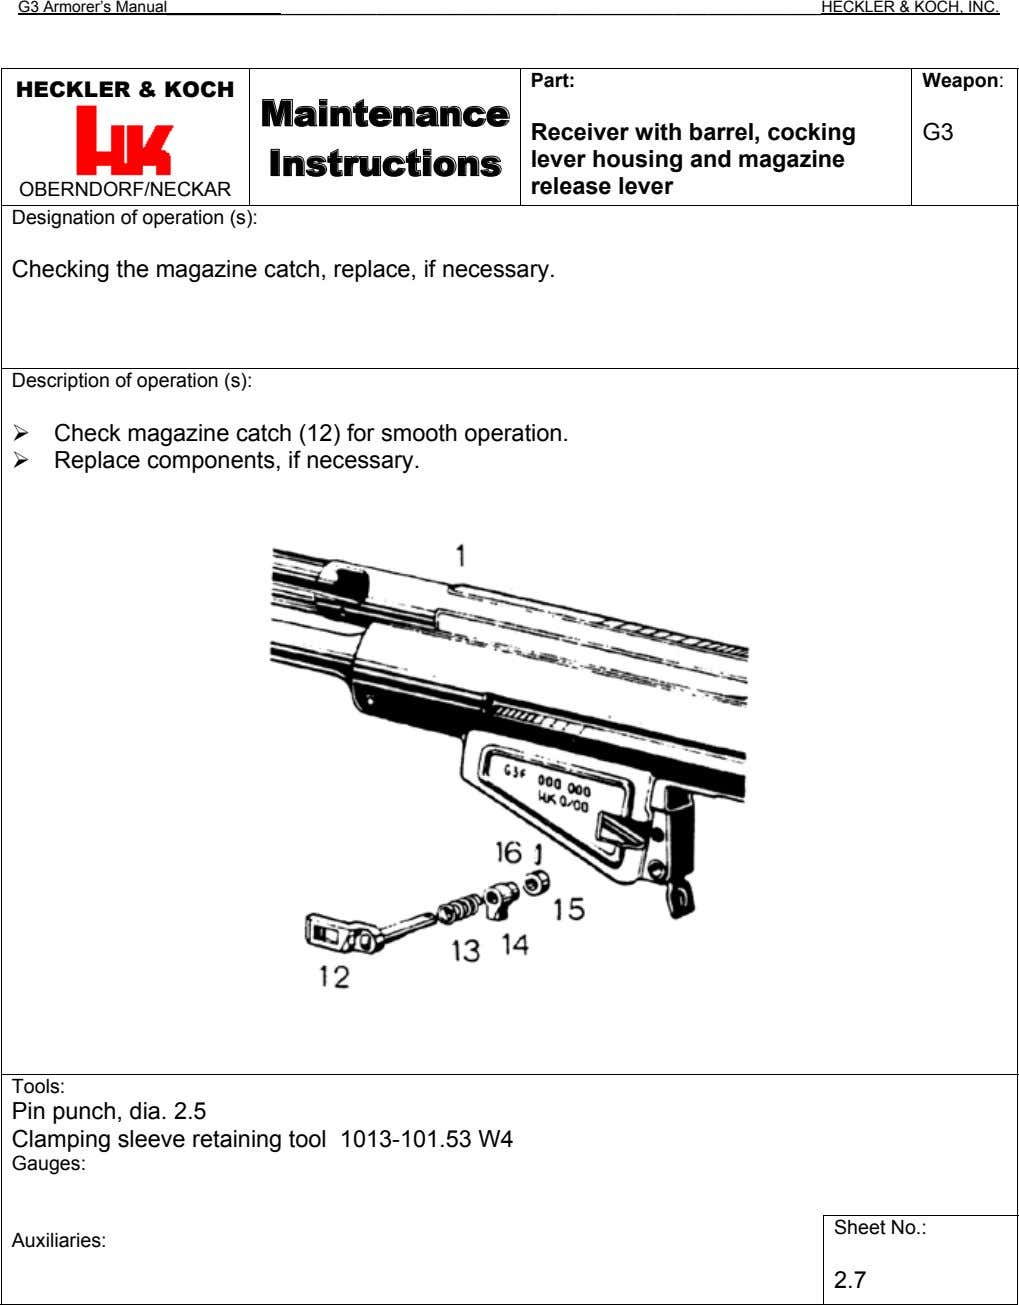 G3 Armorer's Manual HECKLER & KOCH, INC. Part: Weapon: HECKLER & KOCH Maintenance Receiver with